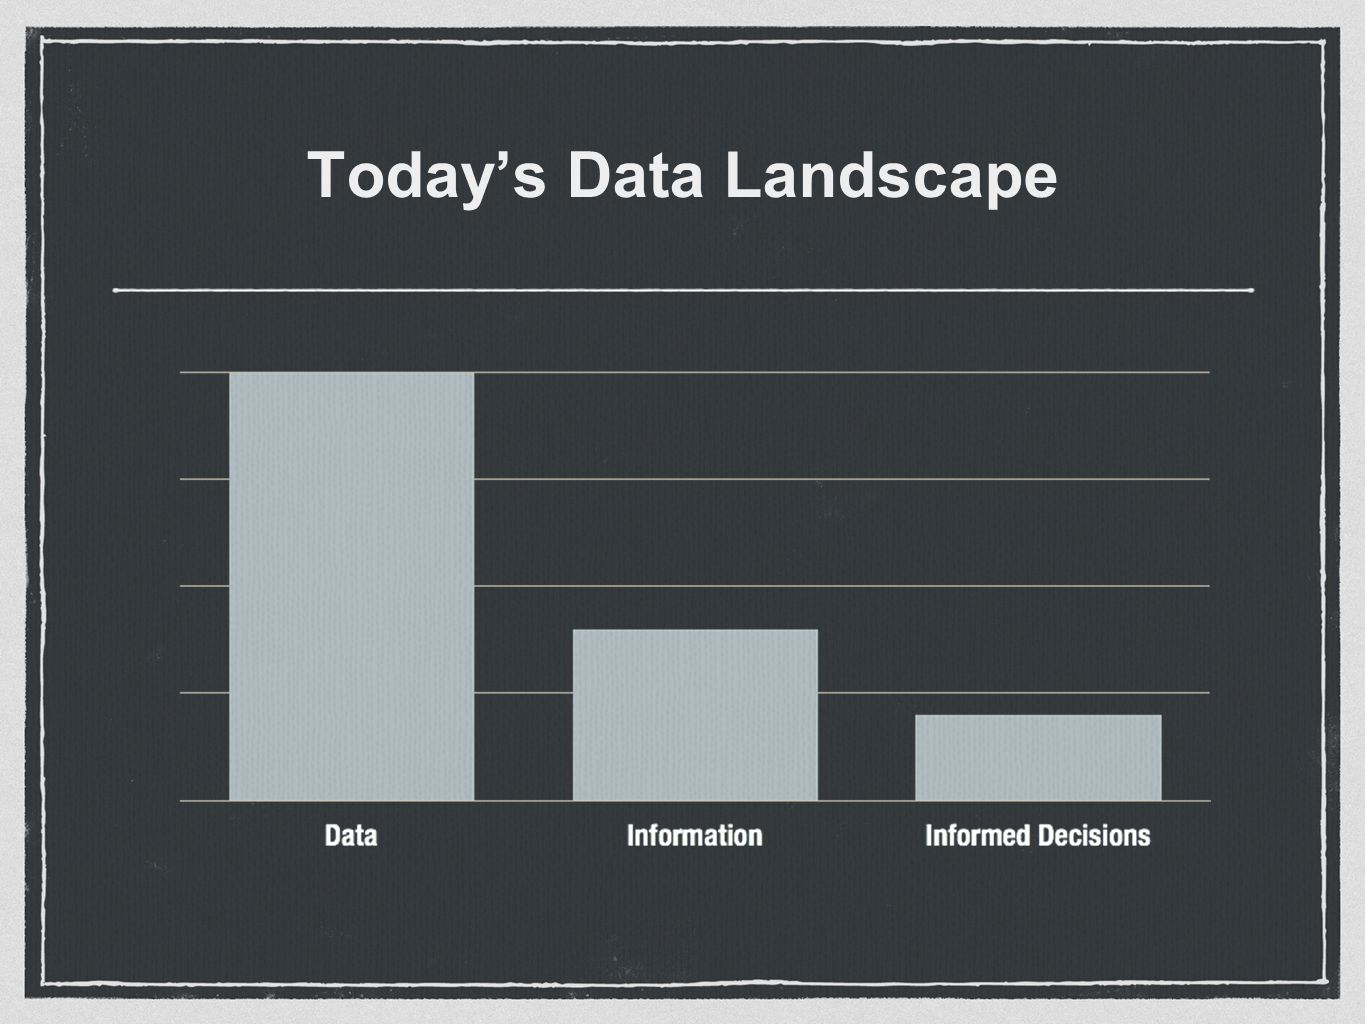 Today's Data Landscape